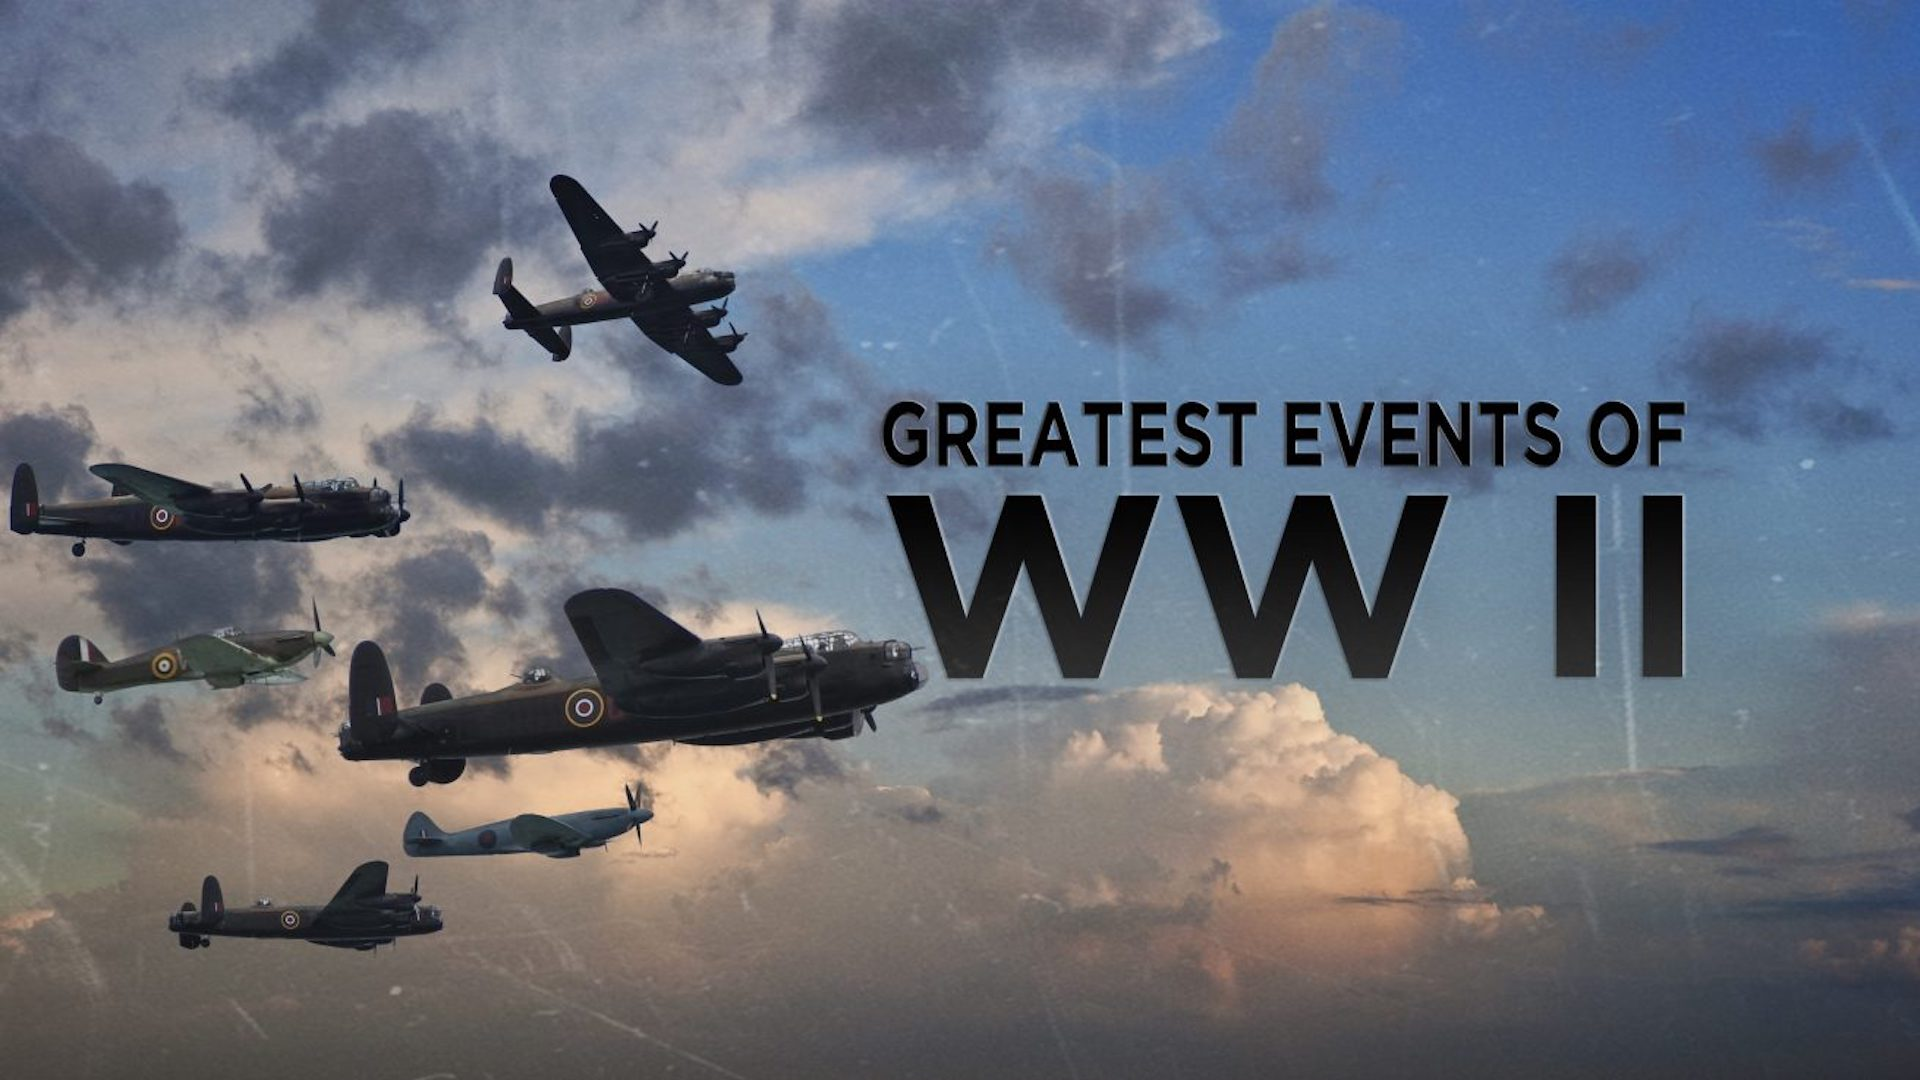 greatest events of world war ii in hd colour s01e05 720p web x264-stout